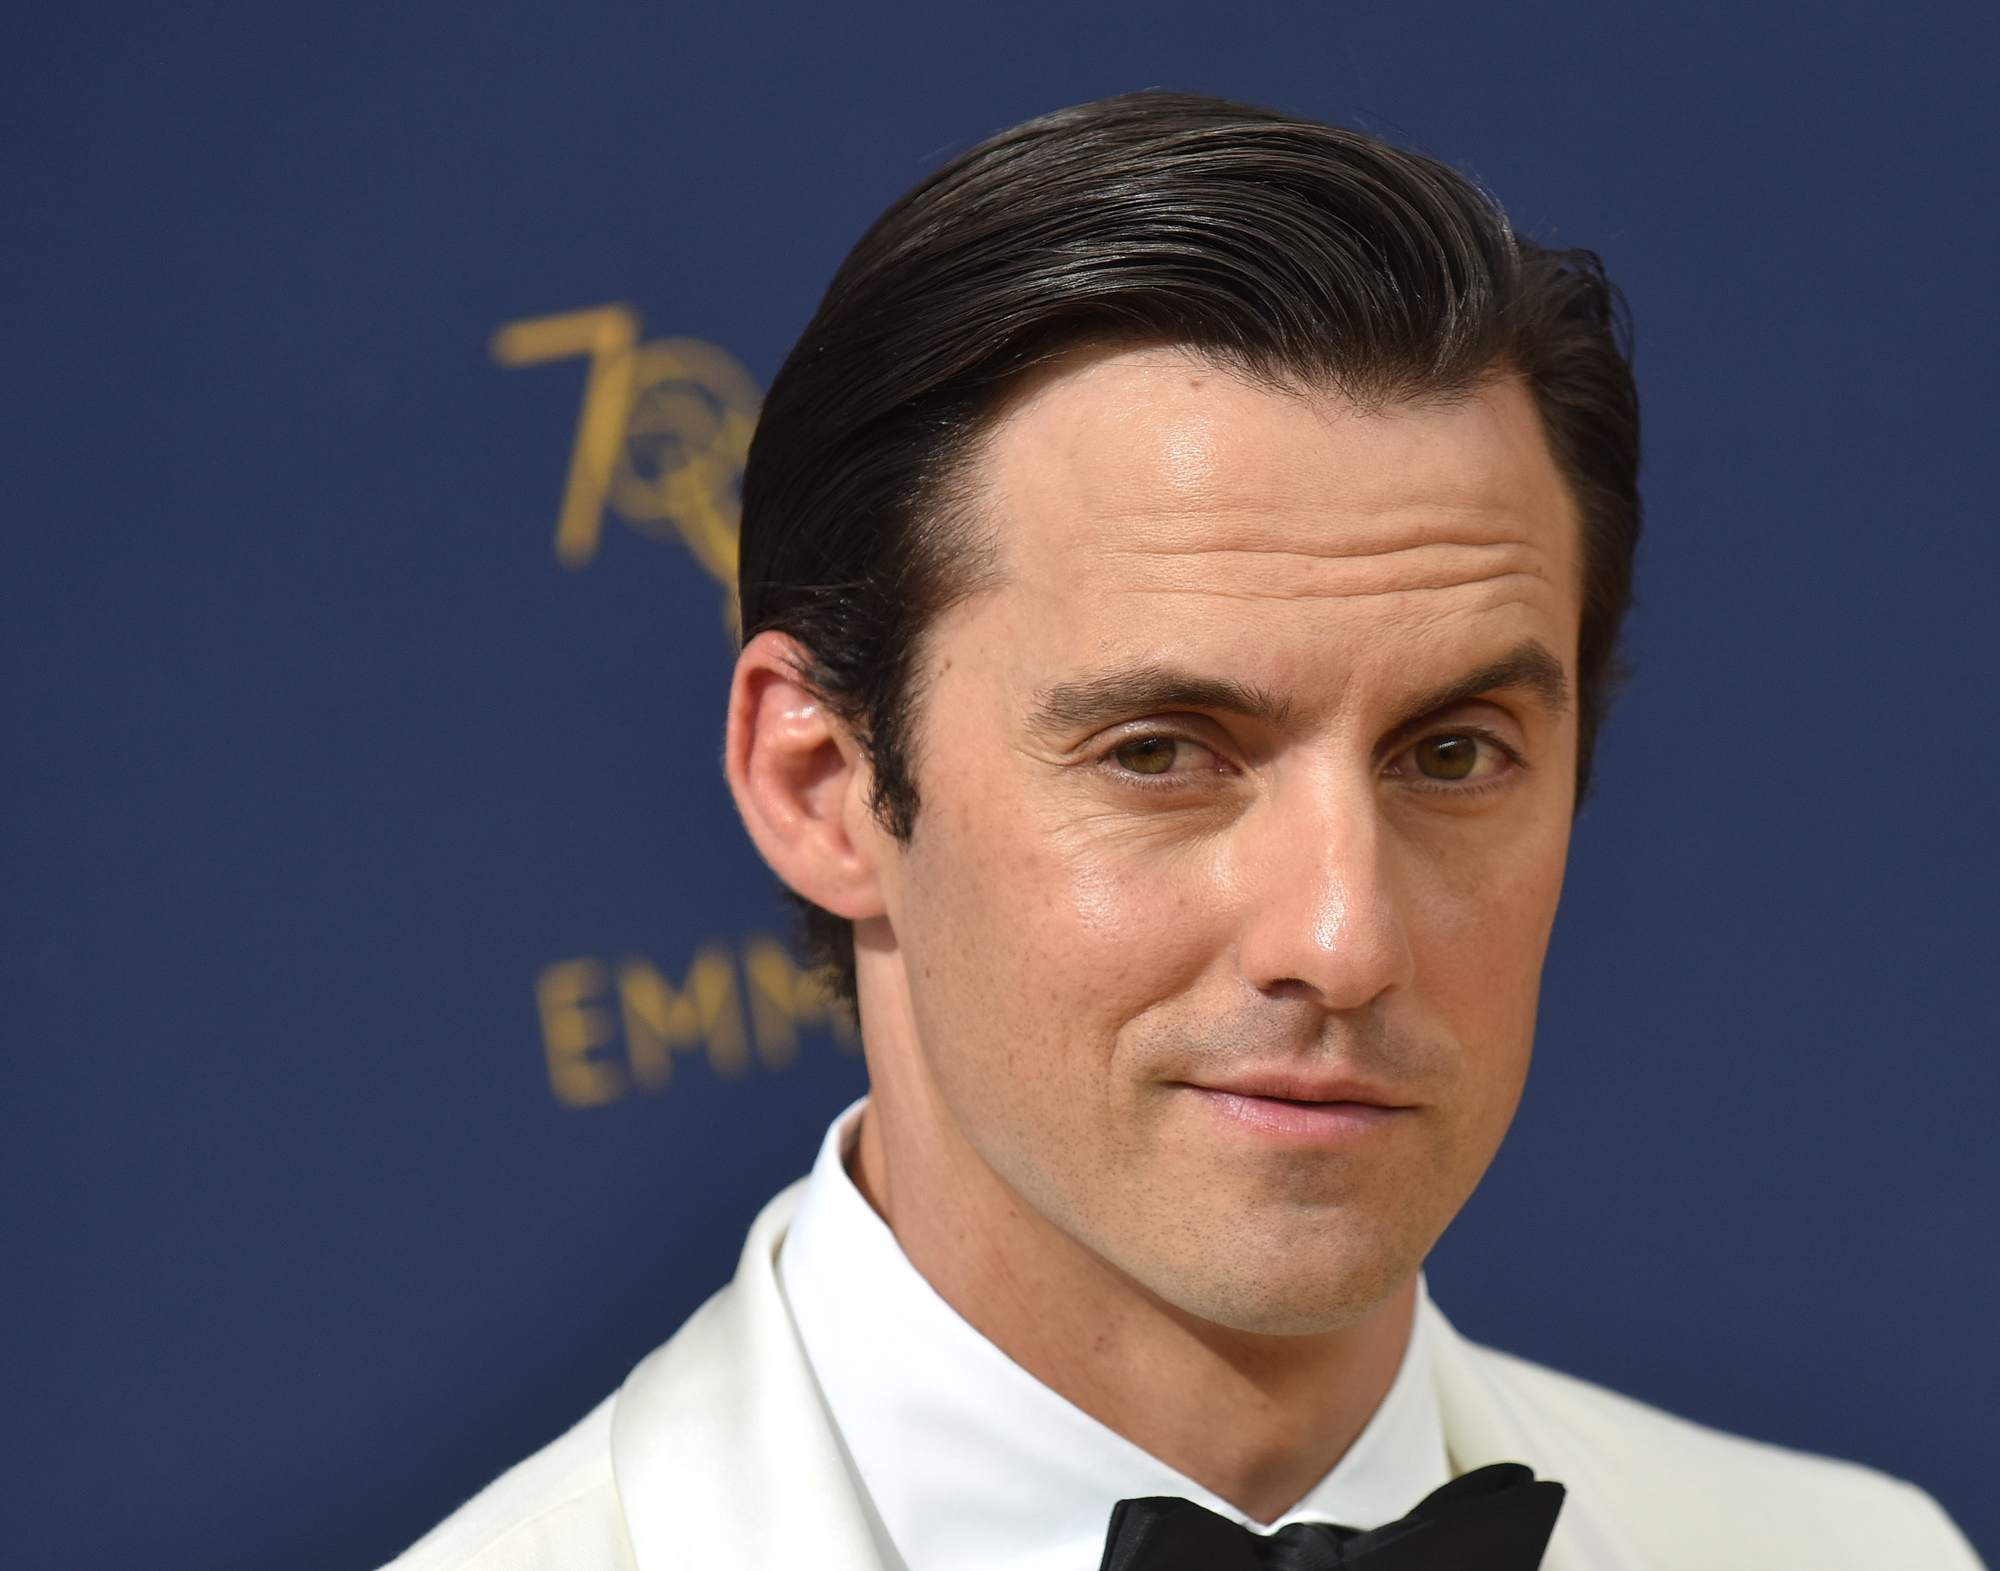 Gilmore Girls and This Is Us actor Milo Ventimiglia at the Emmy Awards 2018 with slick gelled hair wearing a white suit and black bow tie